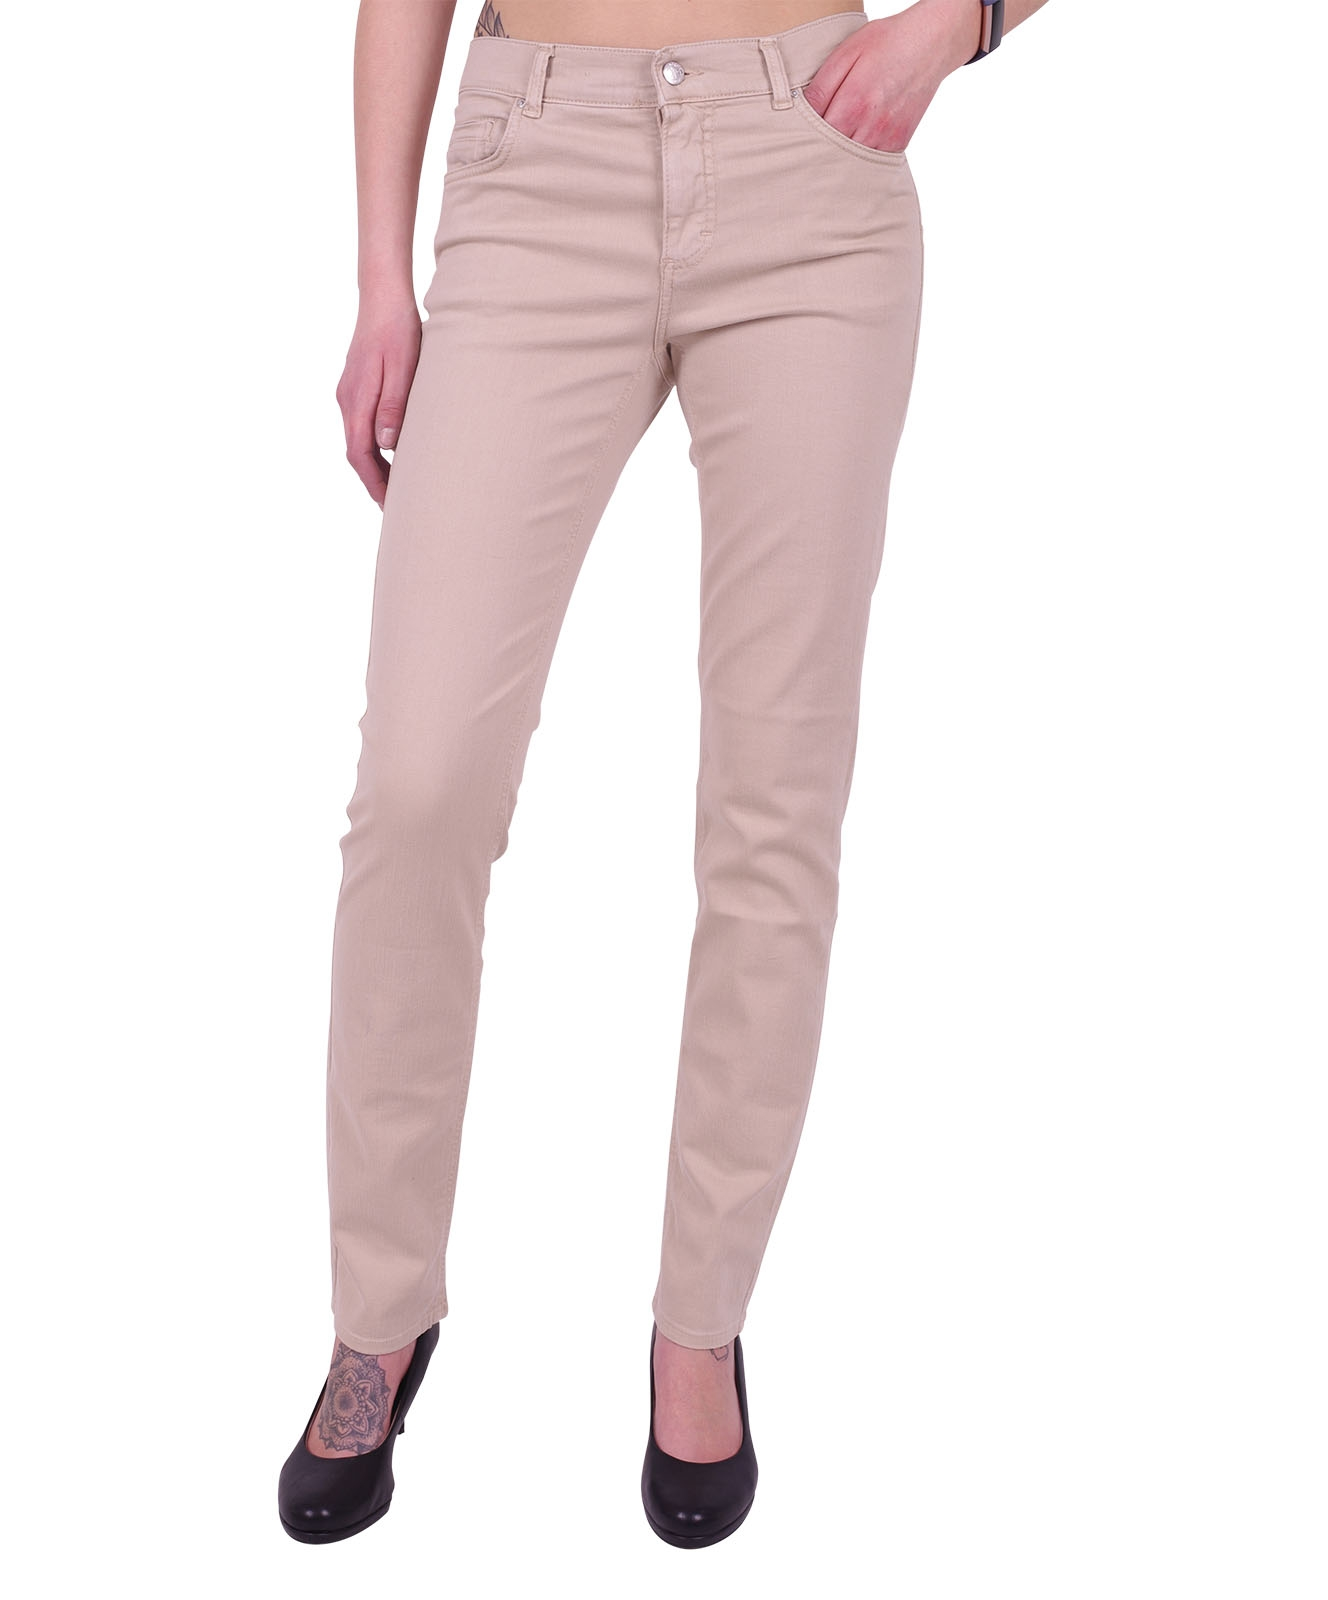 Hosen - Angels Straight Leg Jeans Cici in Latte  - Onlineshop Jeans Meile